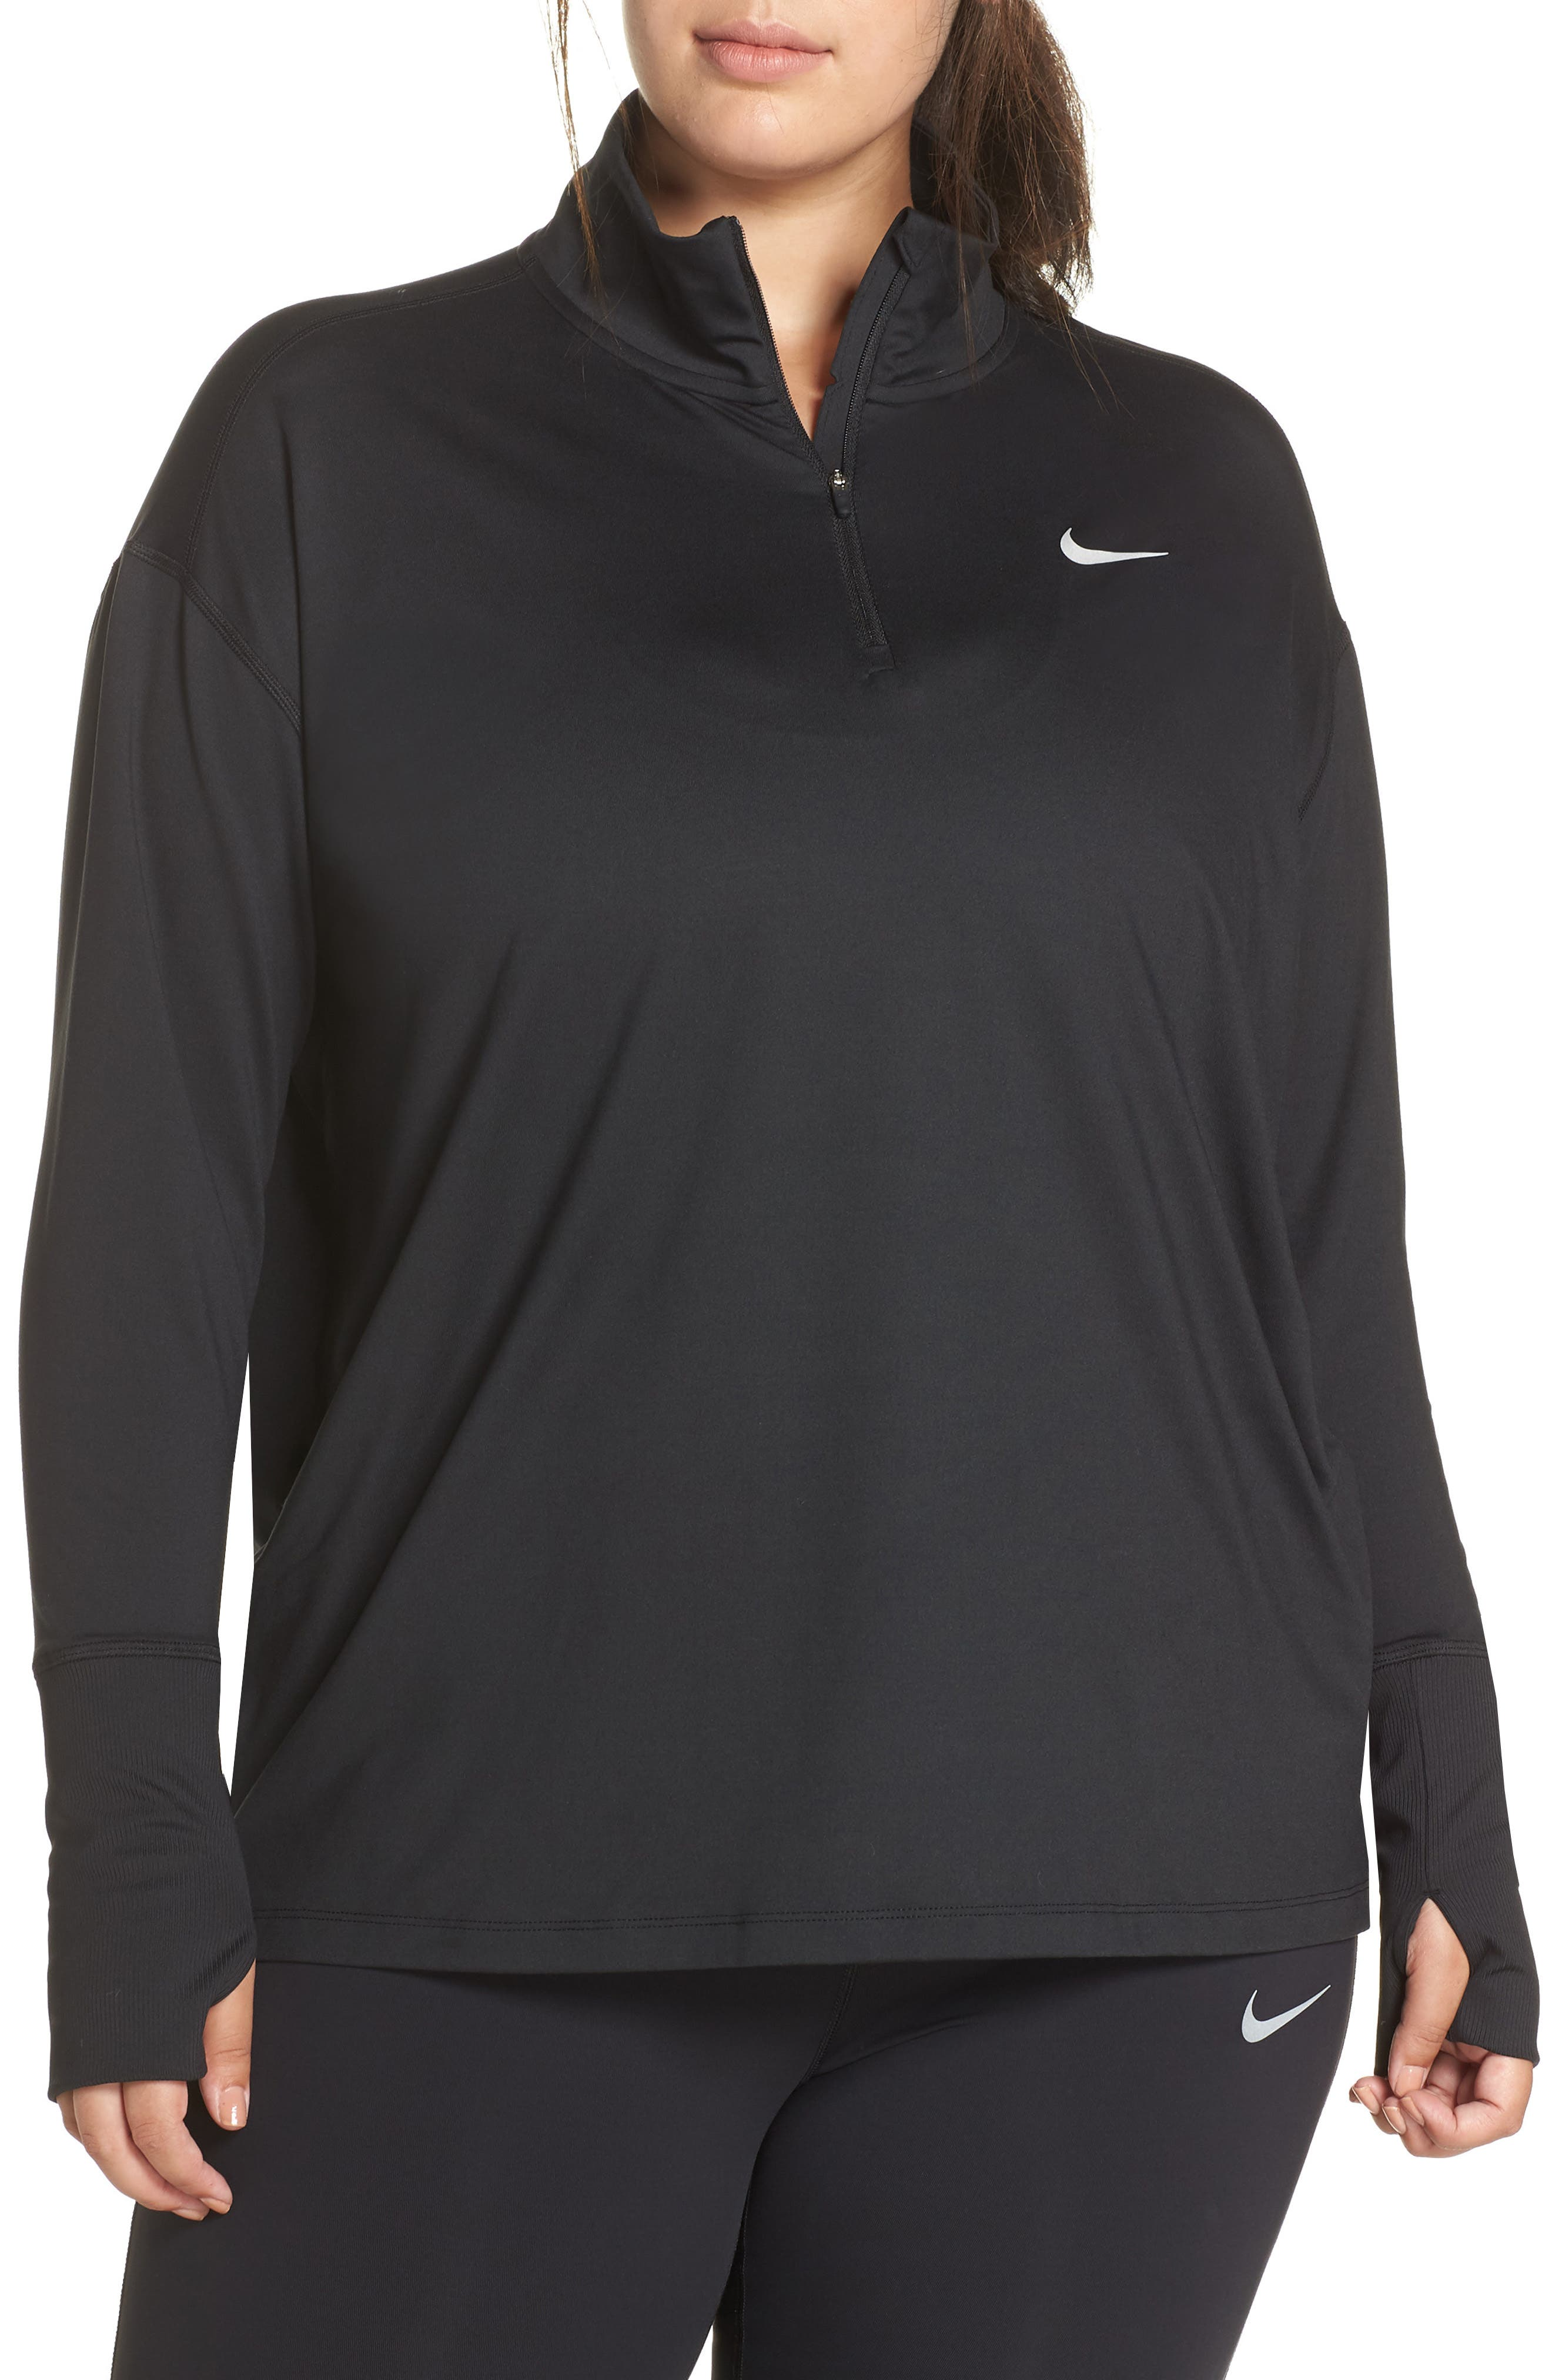 NIKE, Element Long Sleeve Running Top, Main thumbnail 1, color, BLACK